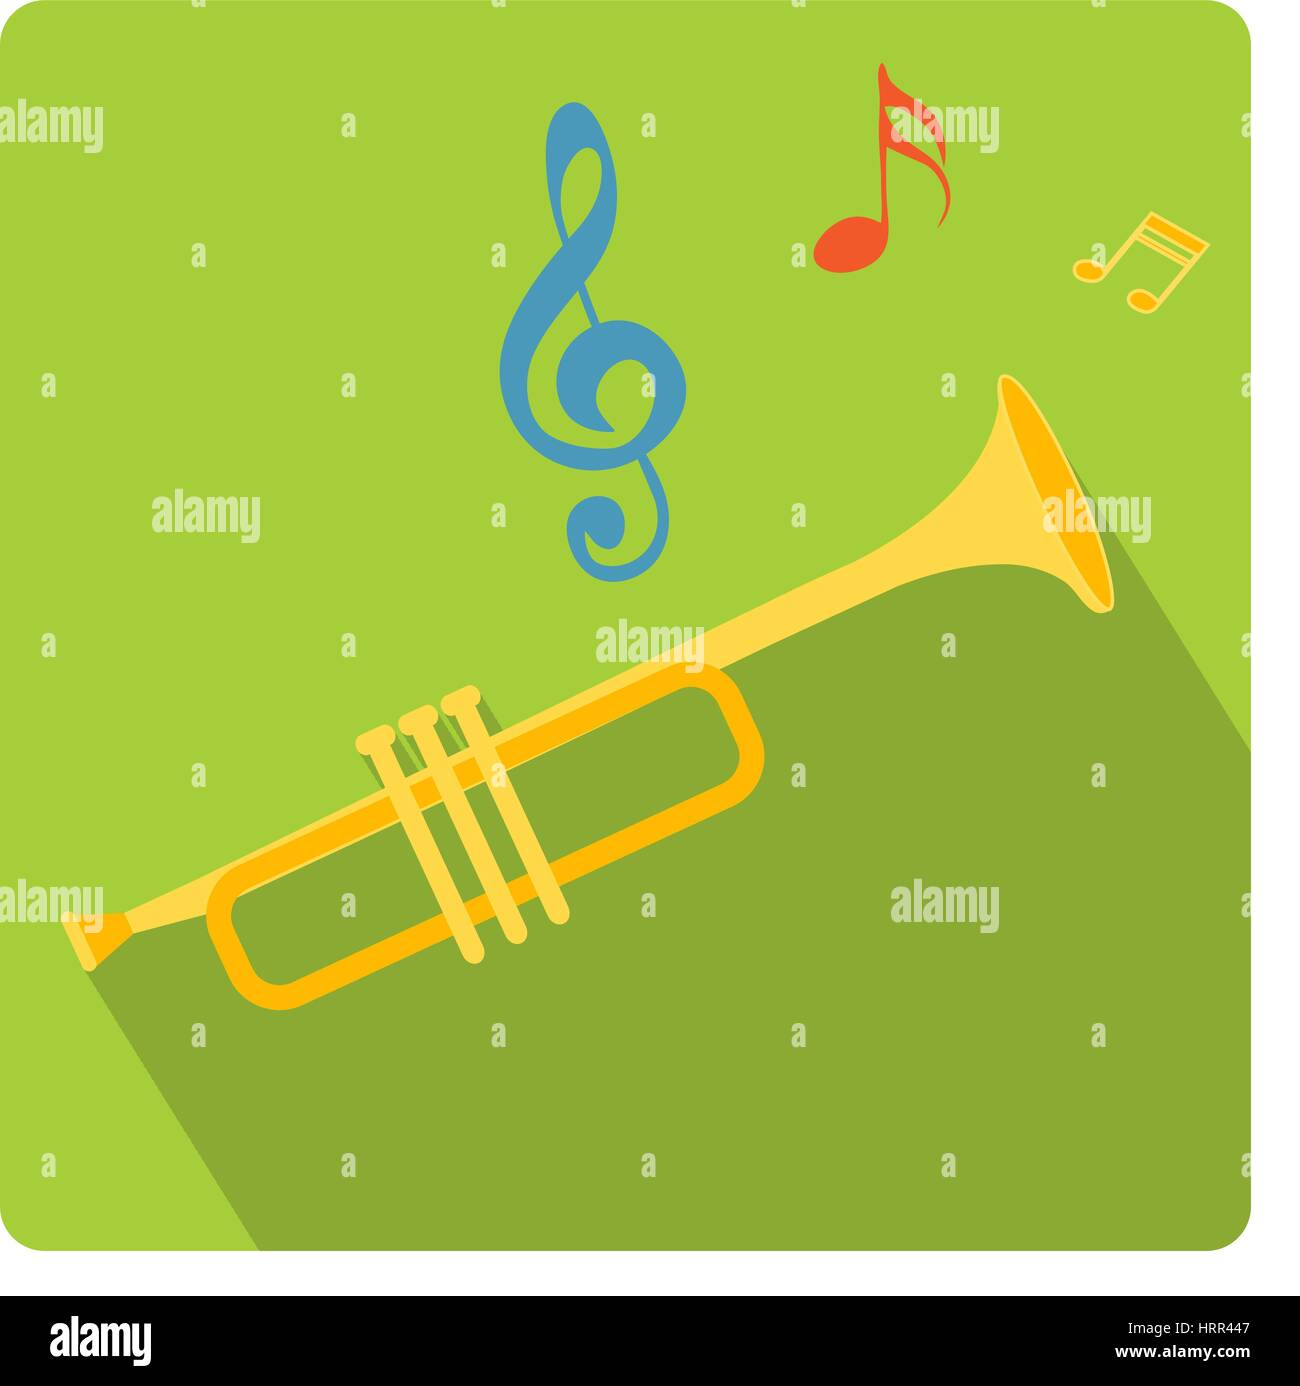 Trumpet musical instrument icon flat style with long shadows, isolated on white background. Vector illustration. - Stock Image